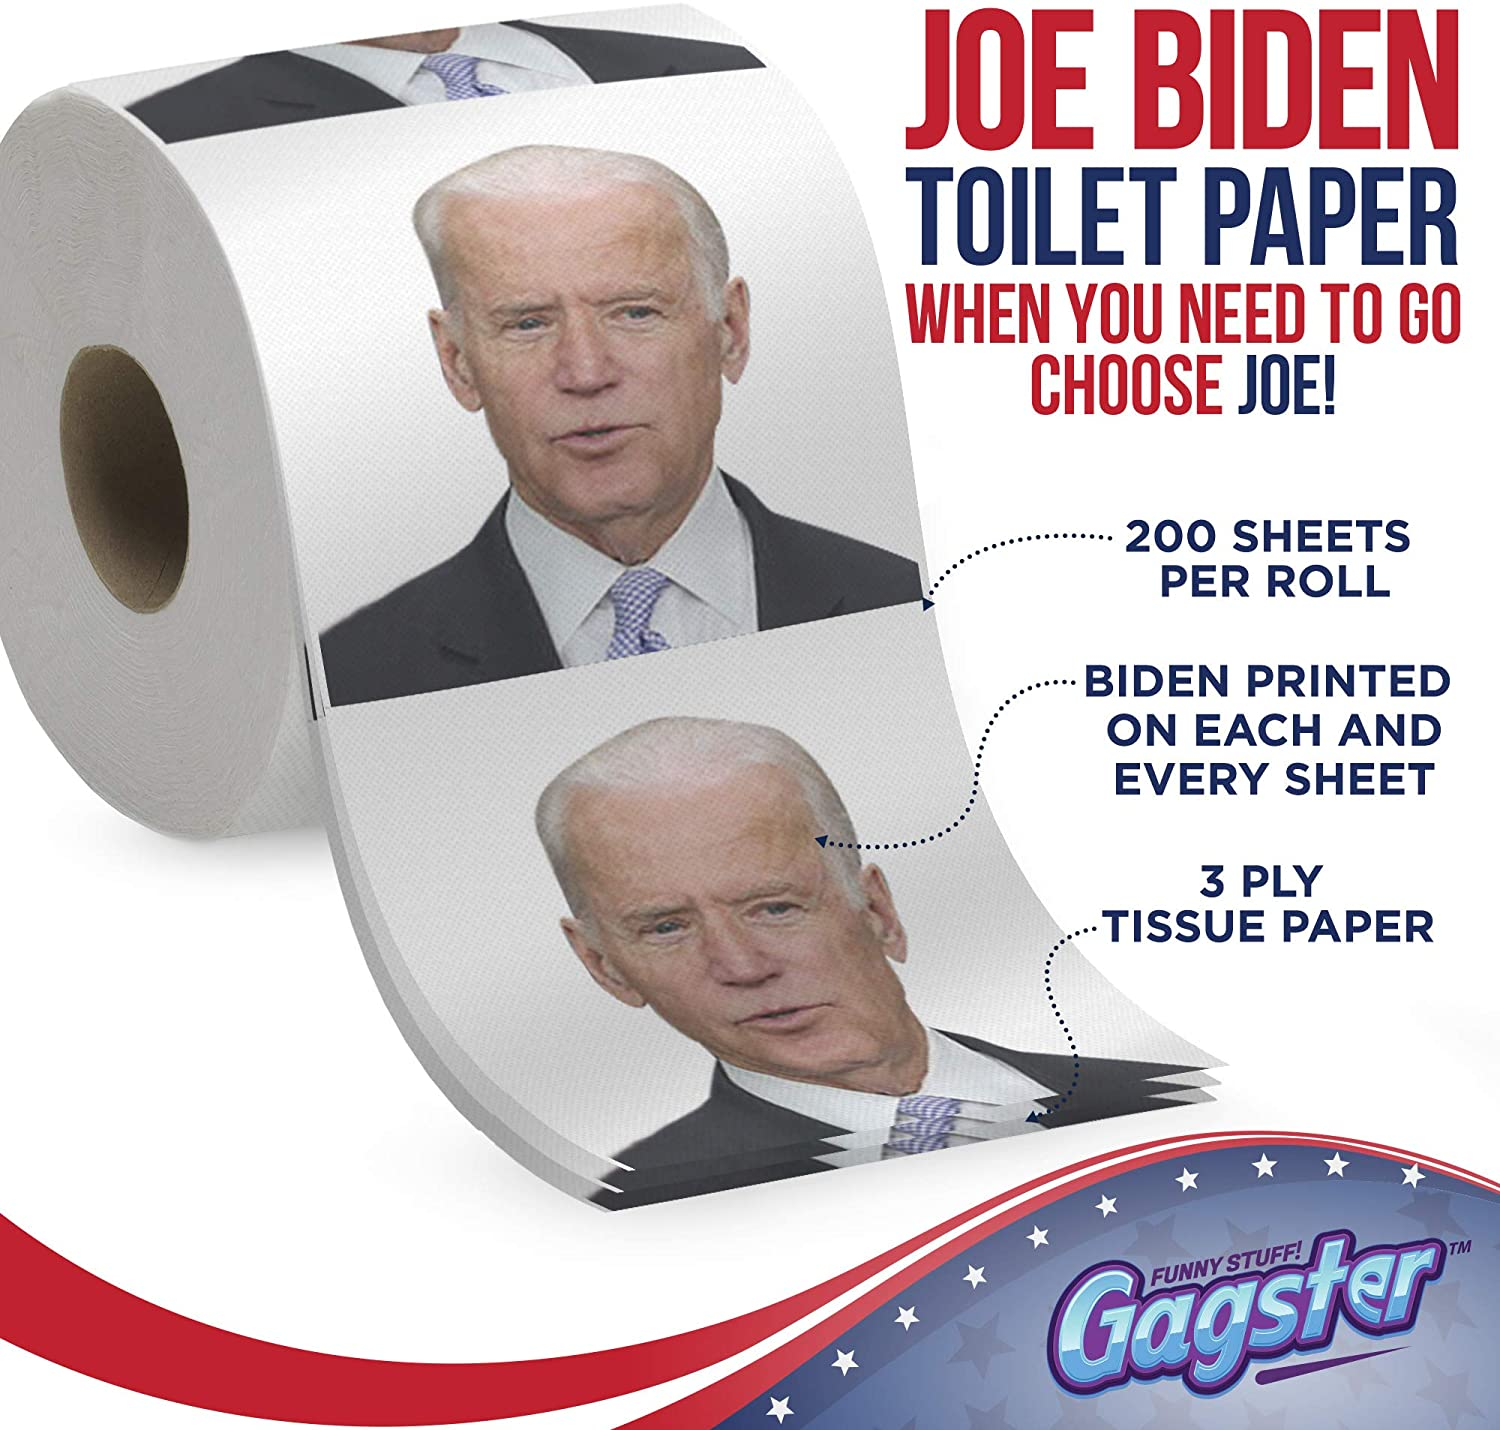 Joe Biden Toilet Paper Roll - Funny Political Novelty Gag Gift - 3 Ply Bathroom Tissue 200 Sheets in Each Roll - Laugh Out Loud Joke with Image Printed on Every Sheet | Hilarious White Elephant Idea